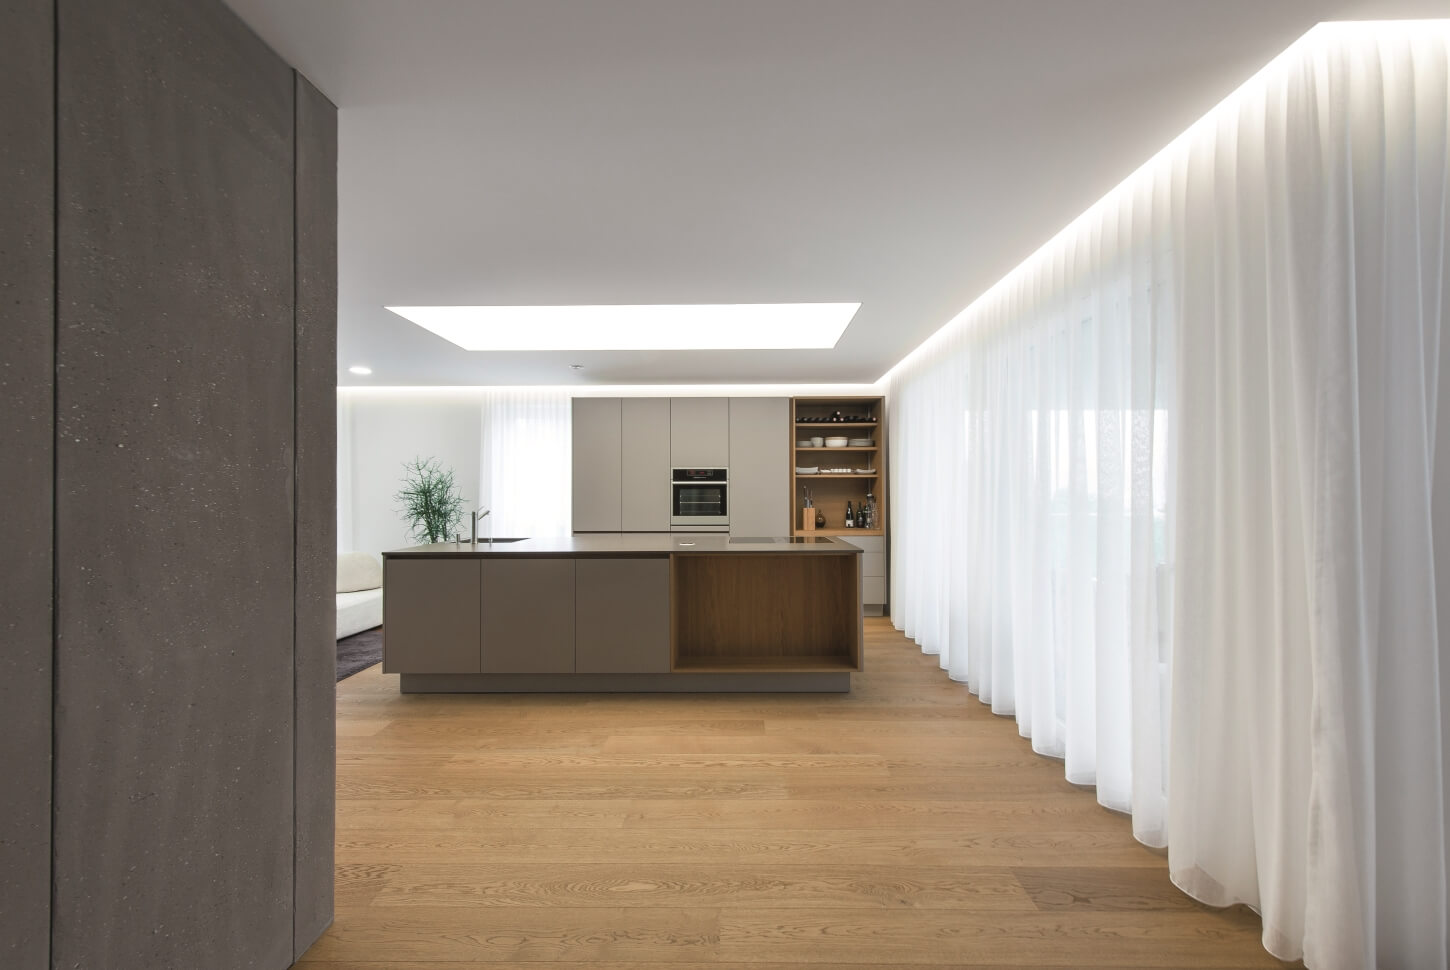 02PI-AP-REF-2016-kitchen-private-linz-AT-01-1450.jpg